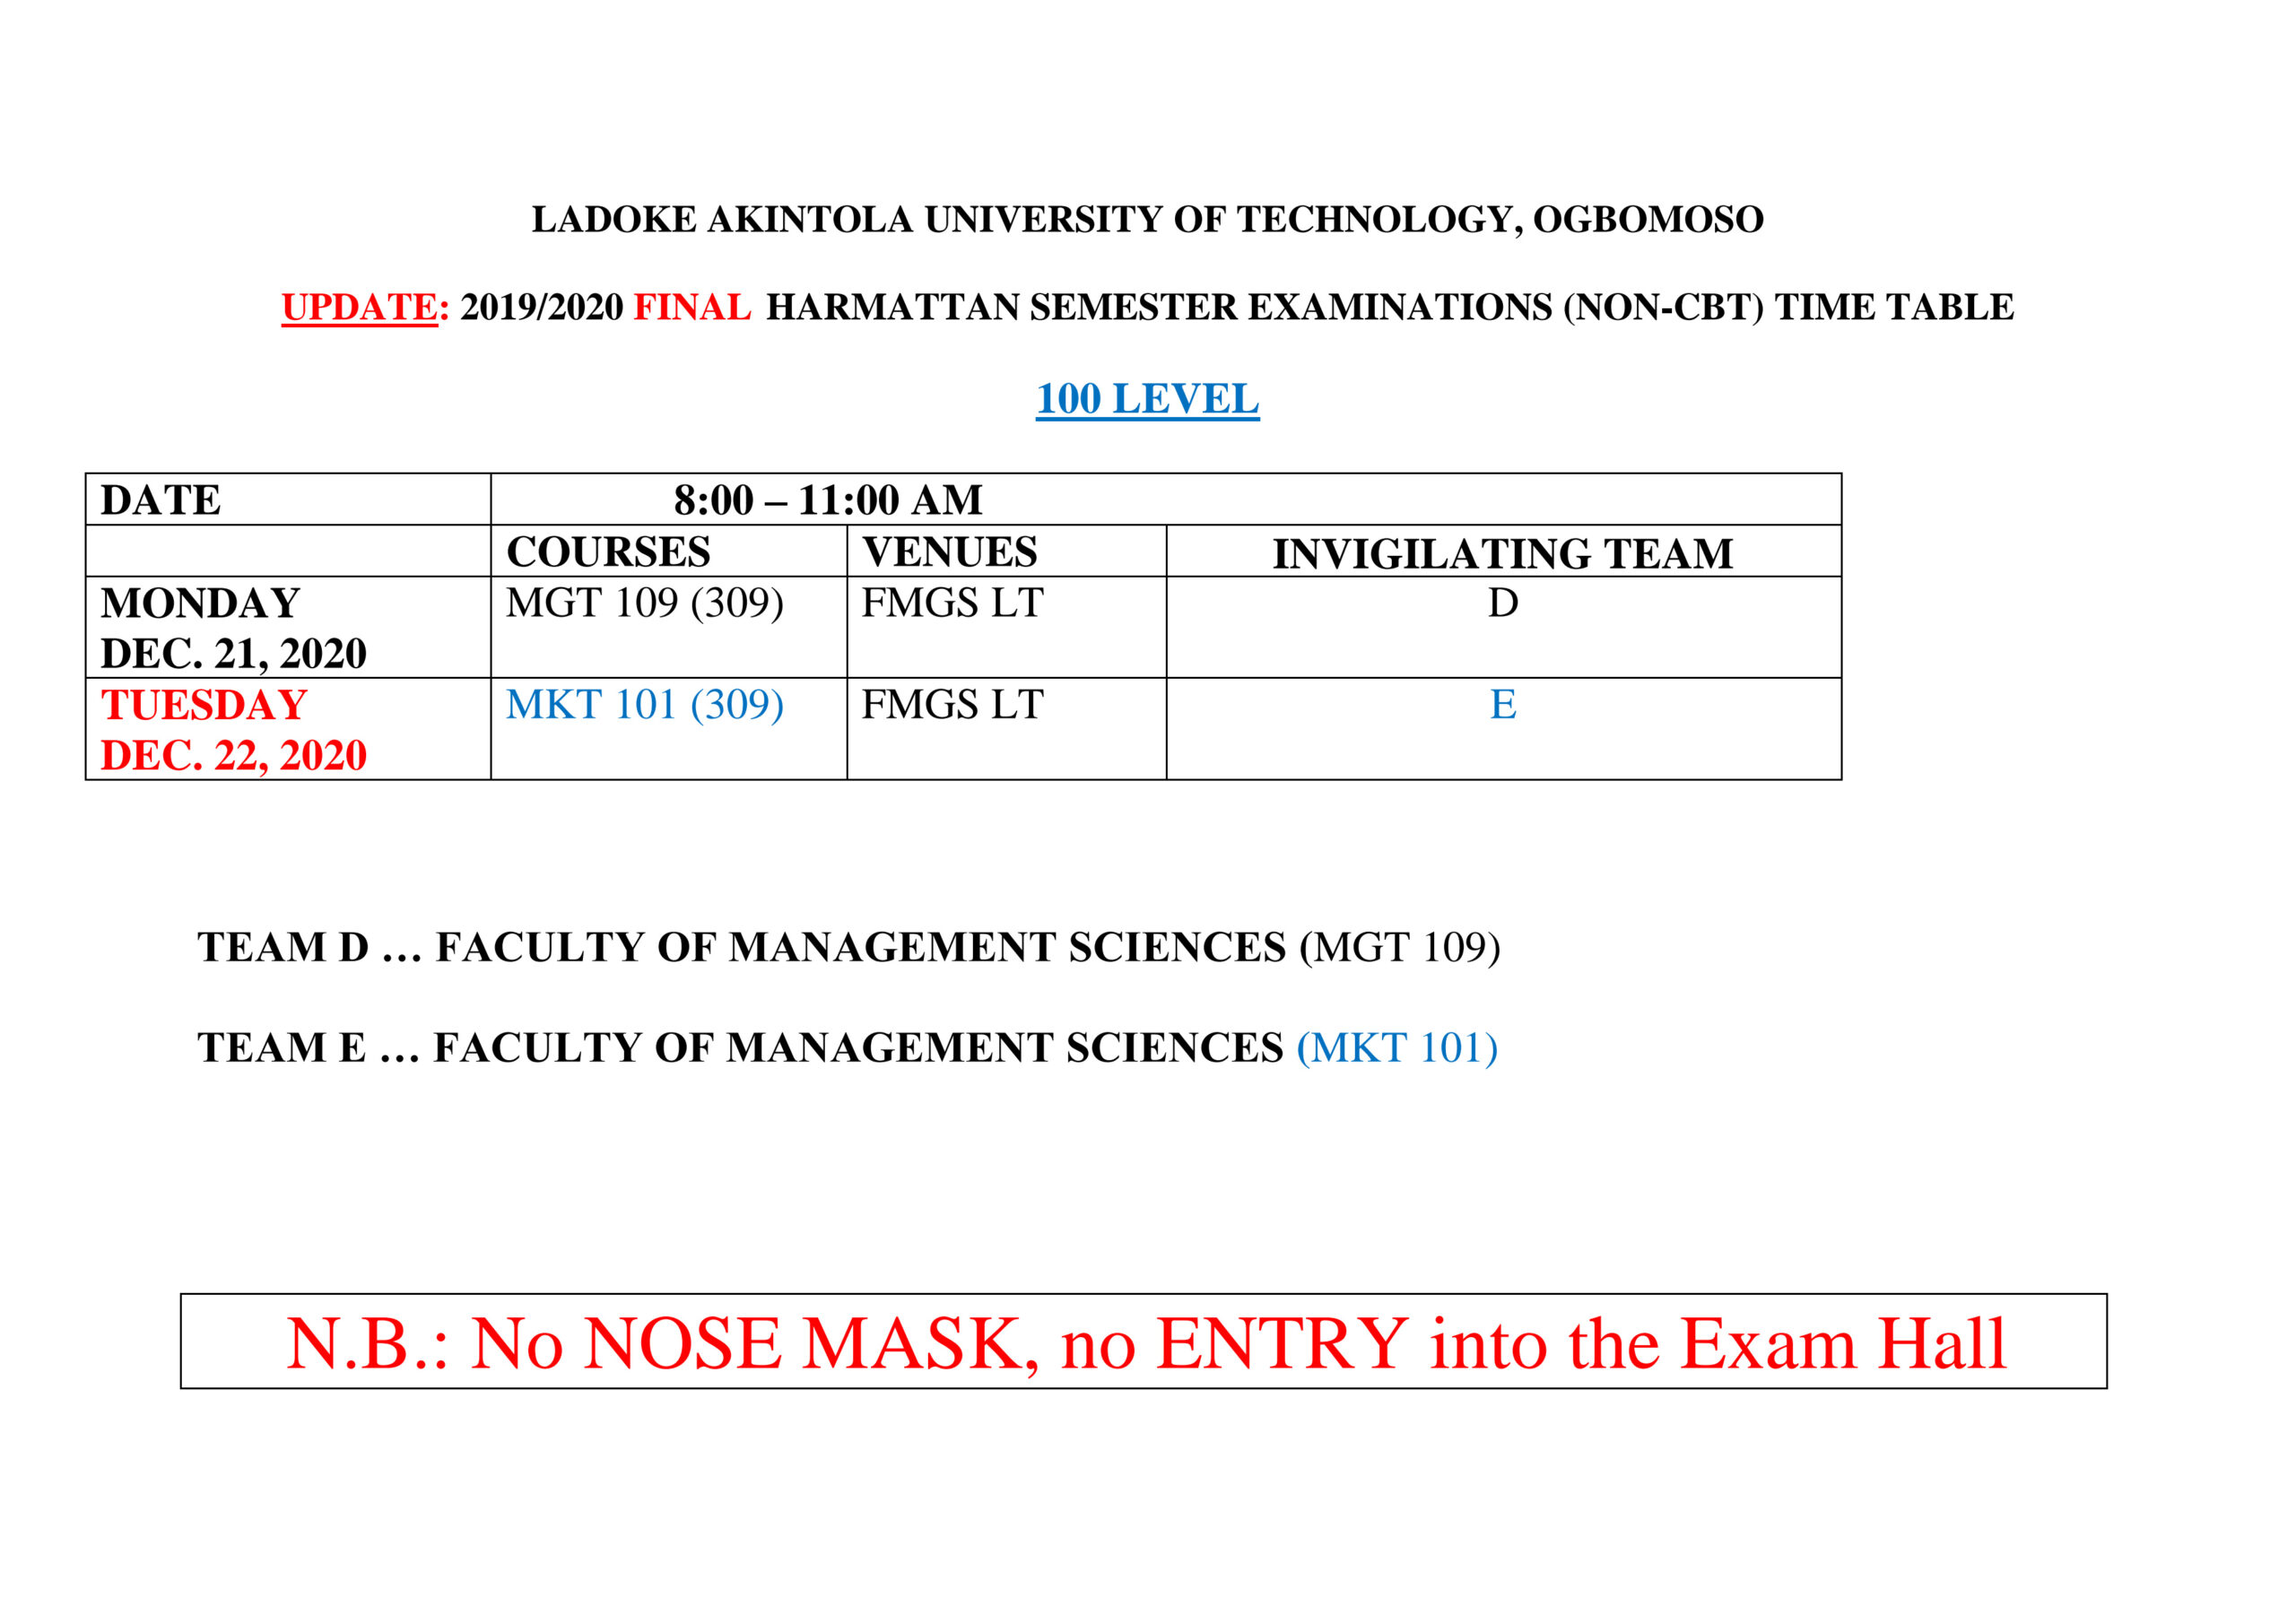 LAUTECH Exam Timetable for Harmattan Semester 2019/2020 is out